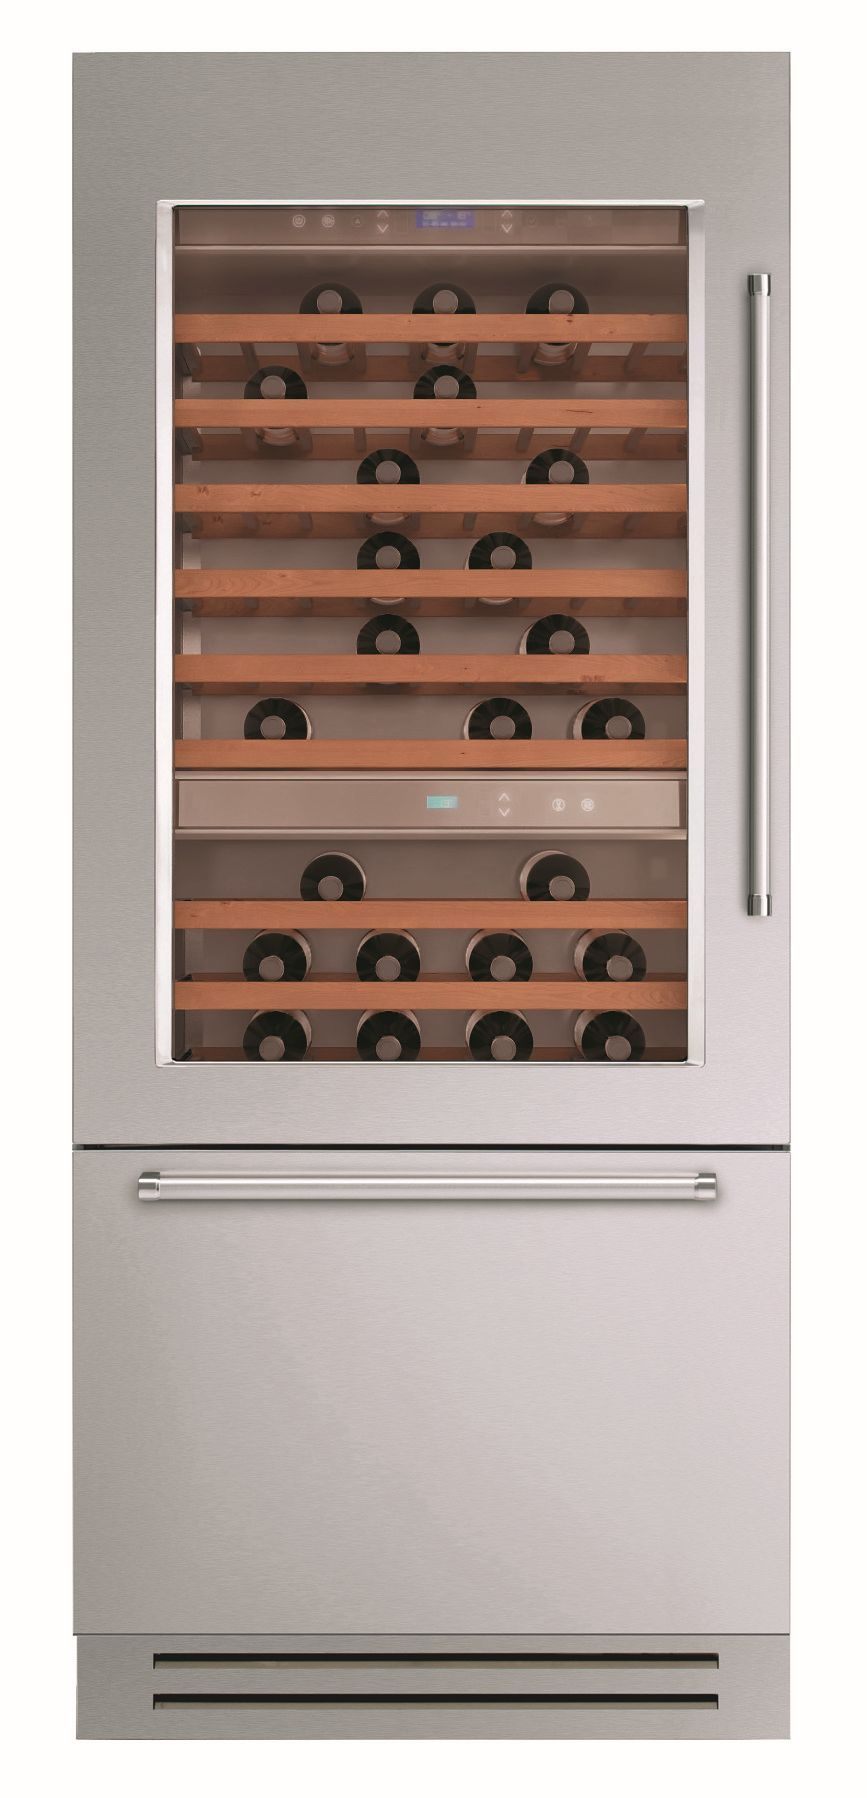 Cantinetta Haier Cantina Kitchenaid Ged Home Decor Wine Rack E Cabinet